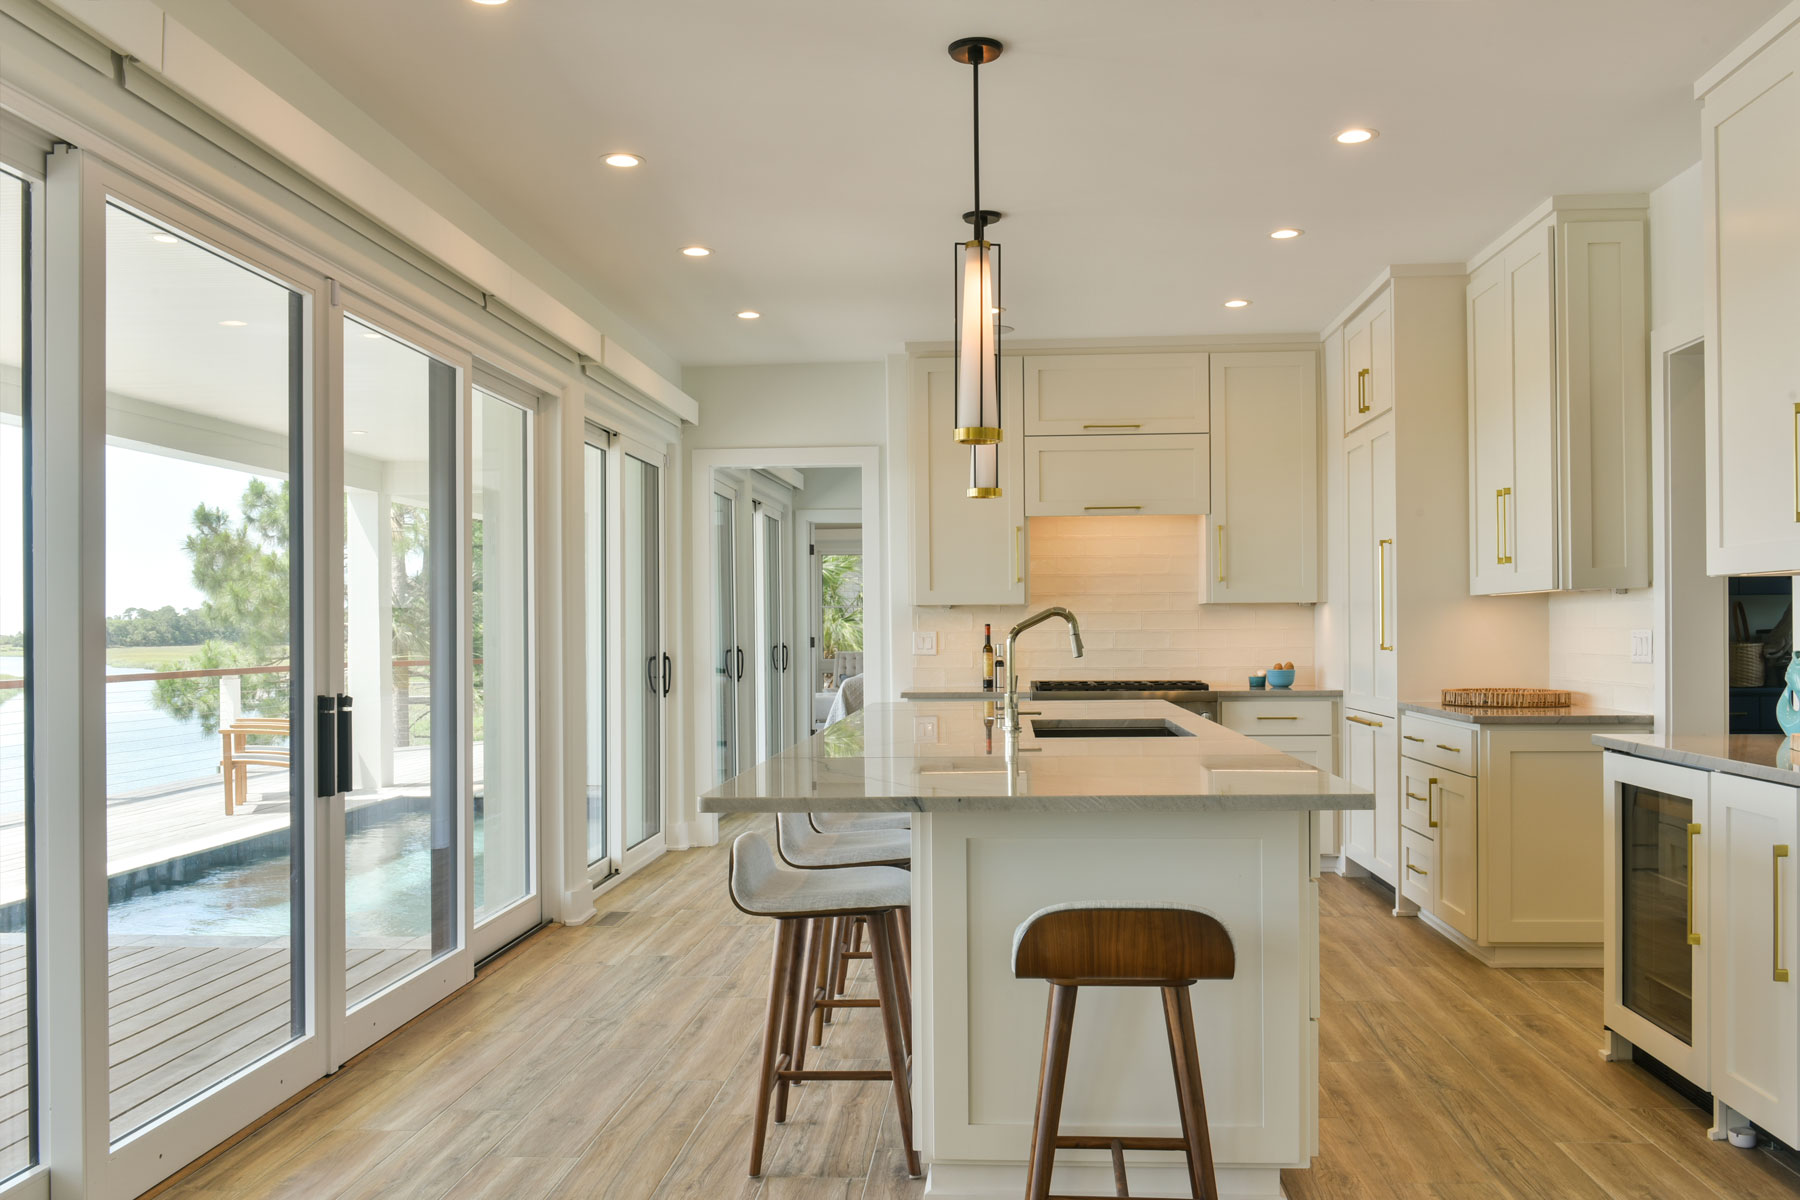 Kitchen opening to pool deck in home designed by Swallowtail Architecture